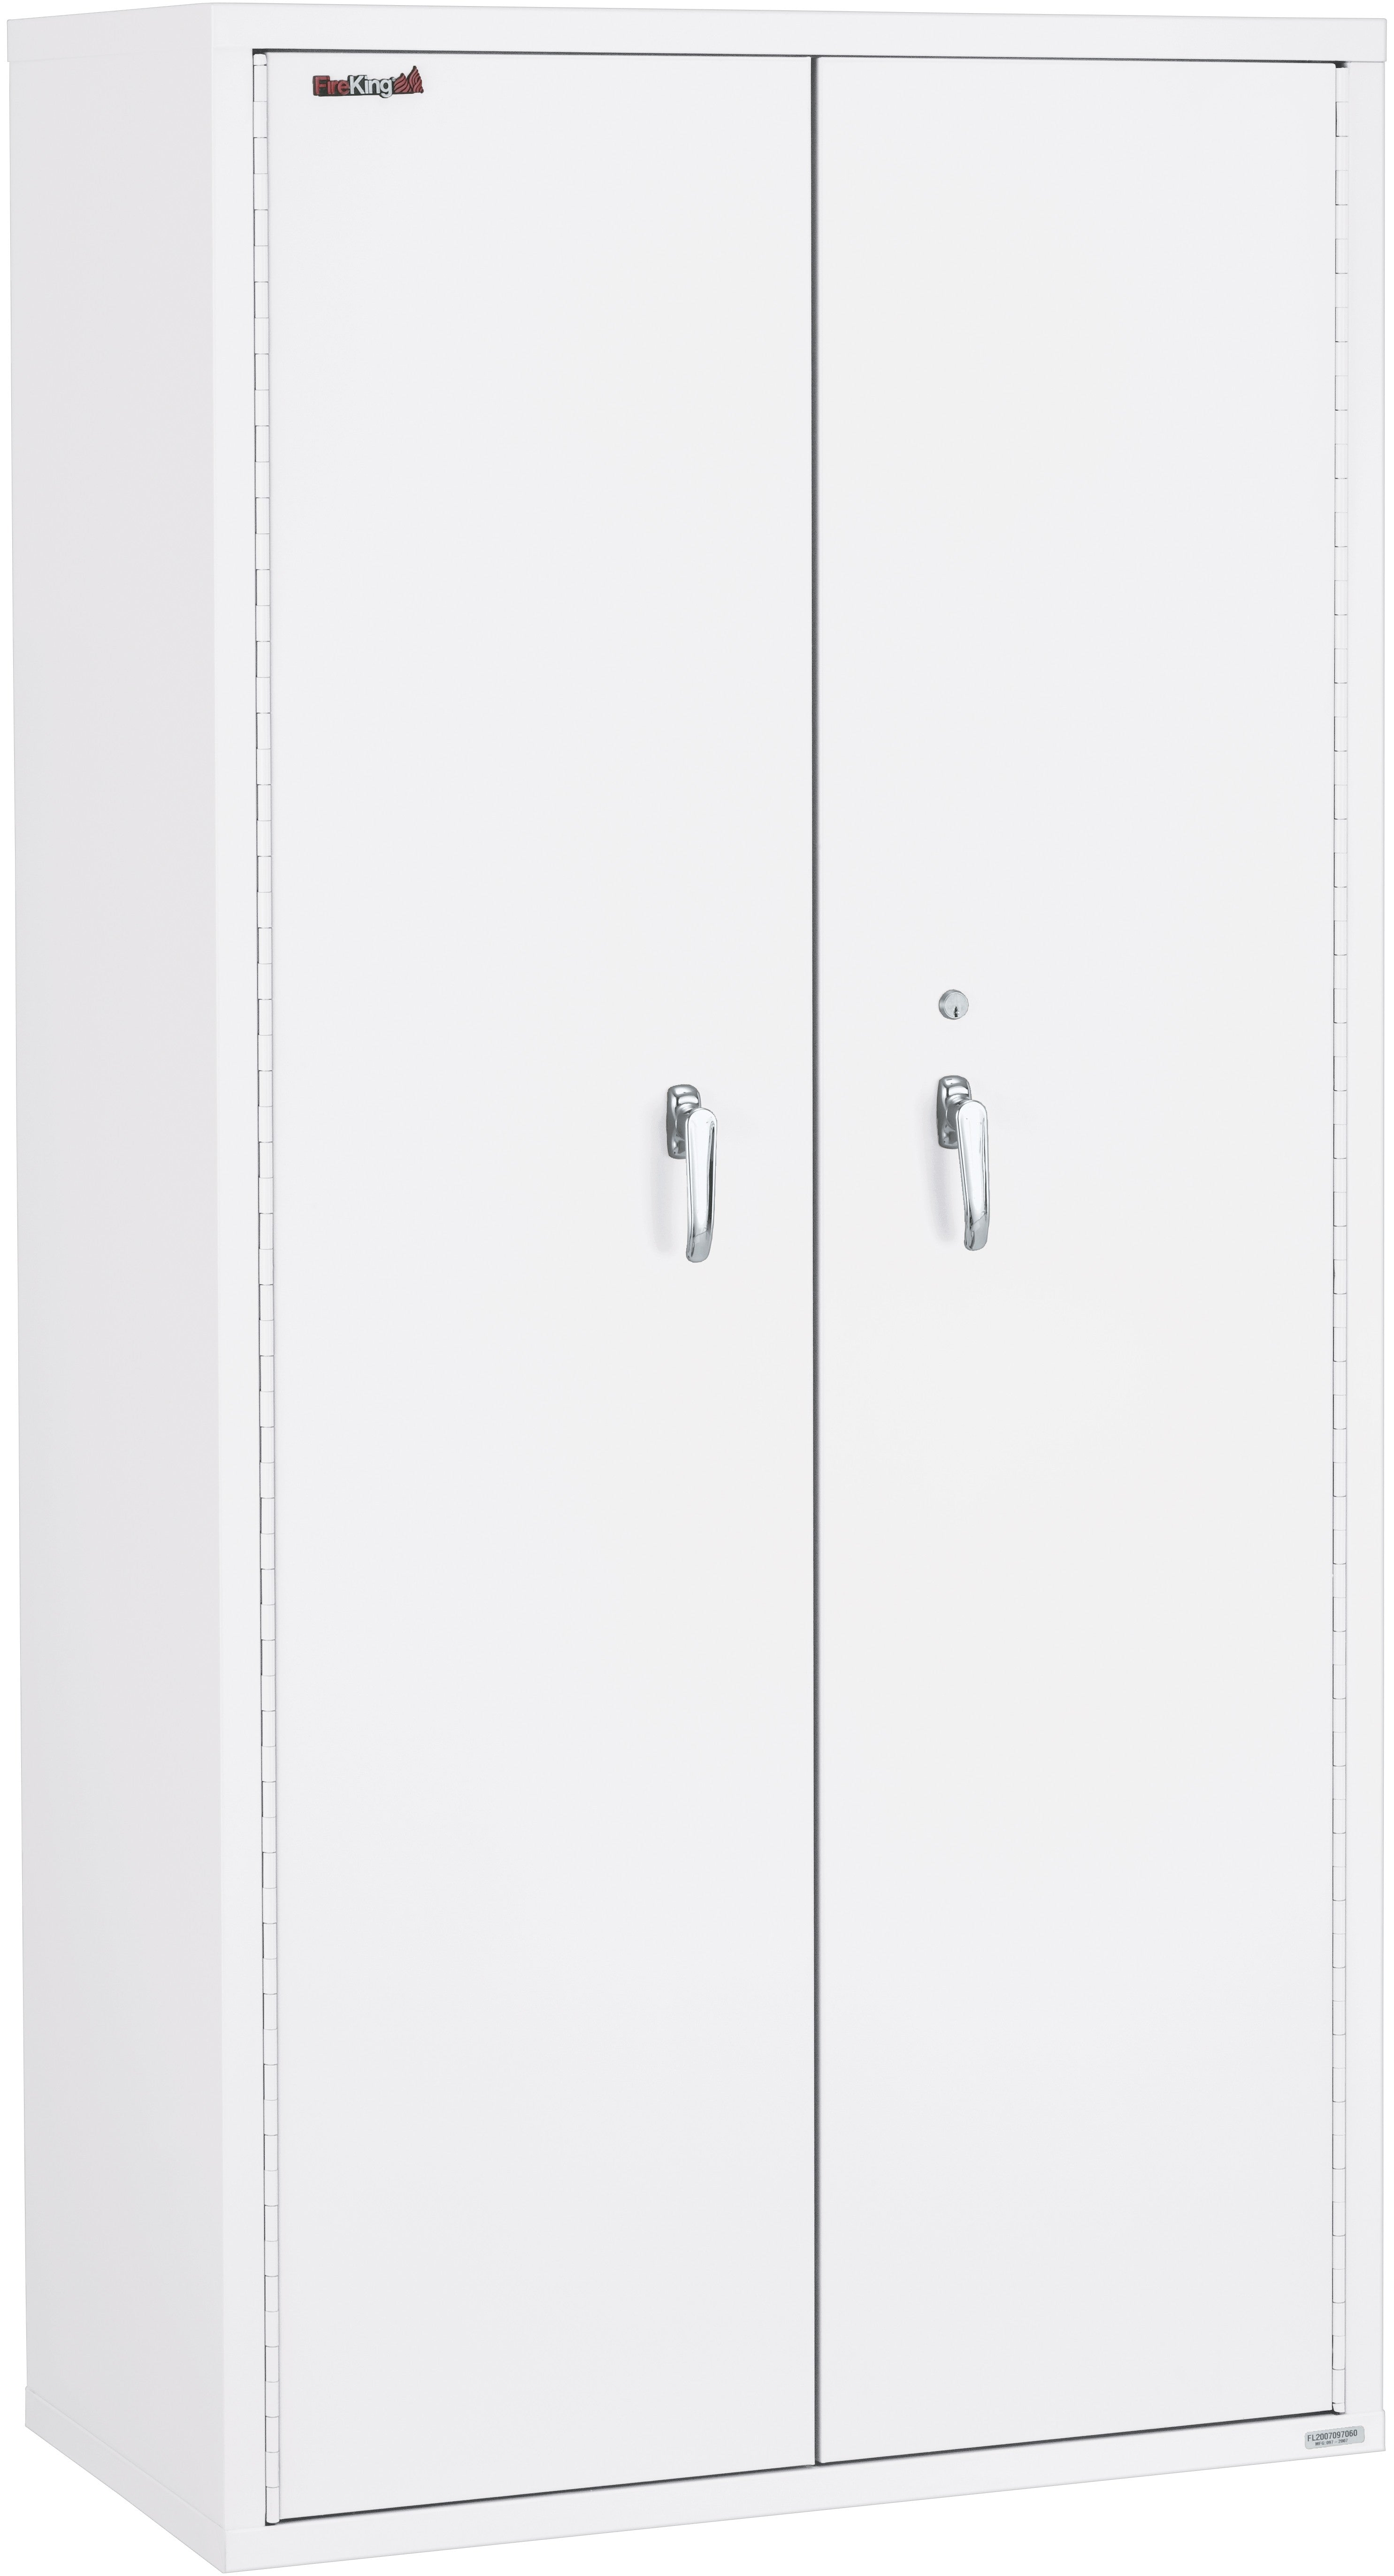 "Fireking 72"" Height Storage Cabinet with Adjustable Shelves"